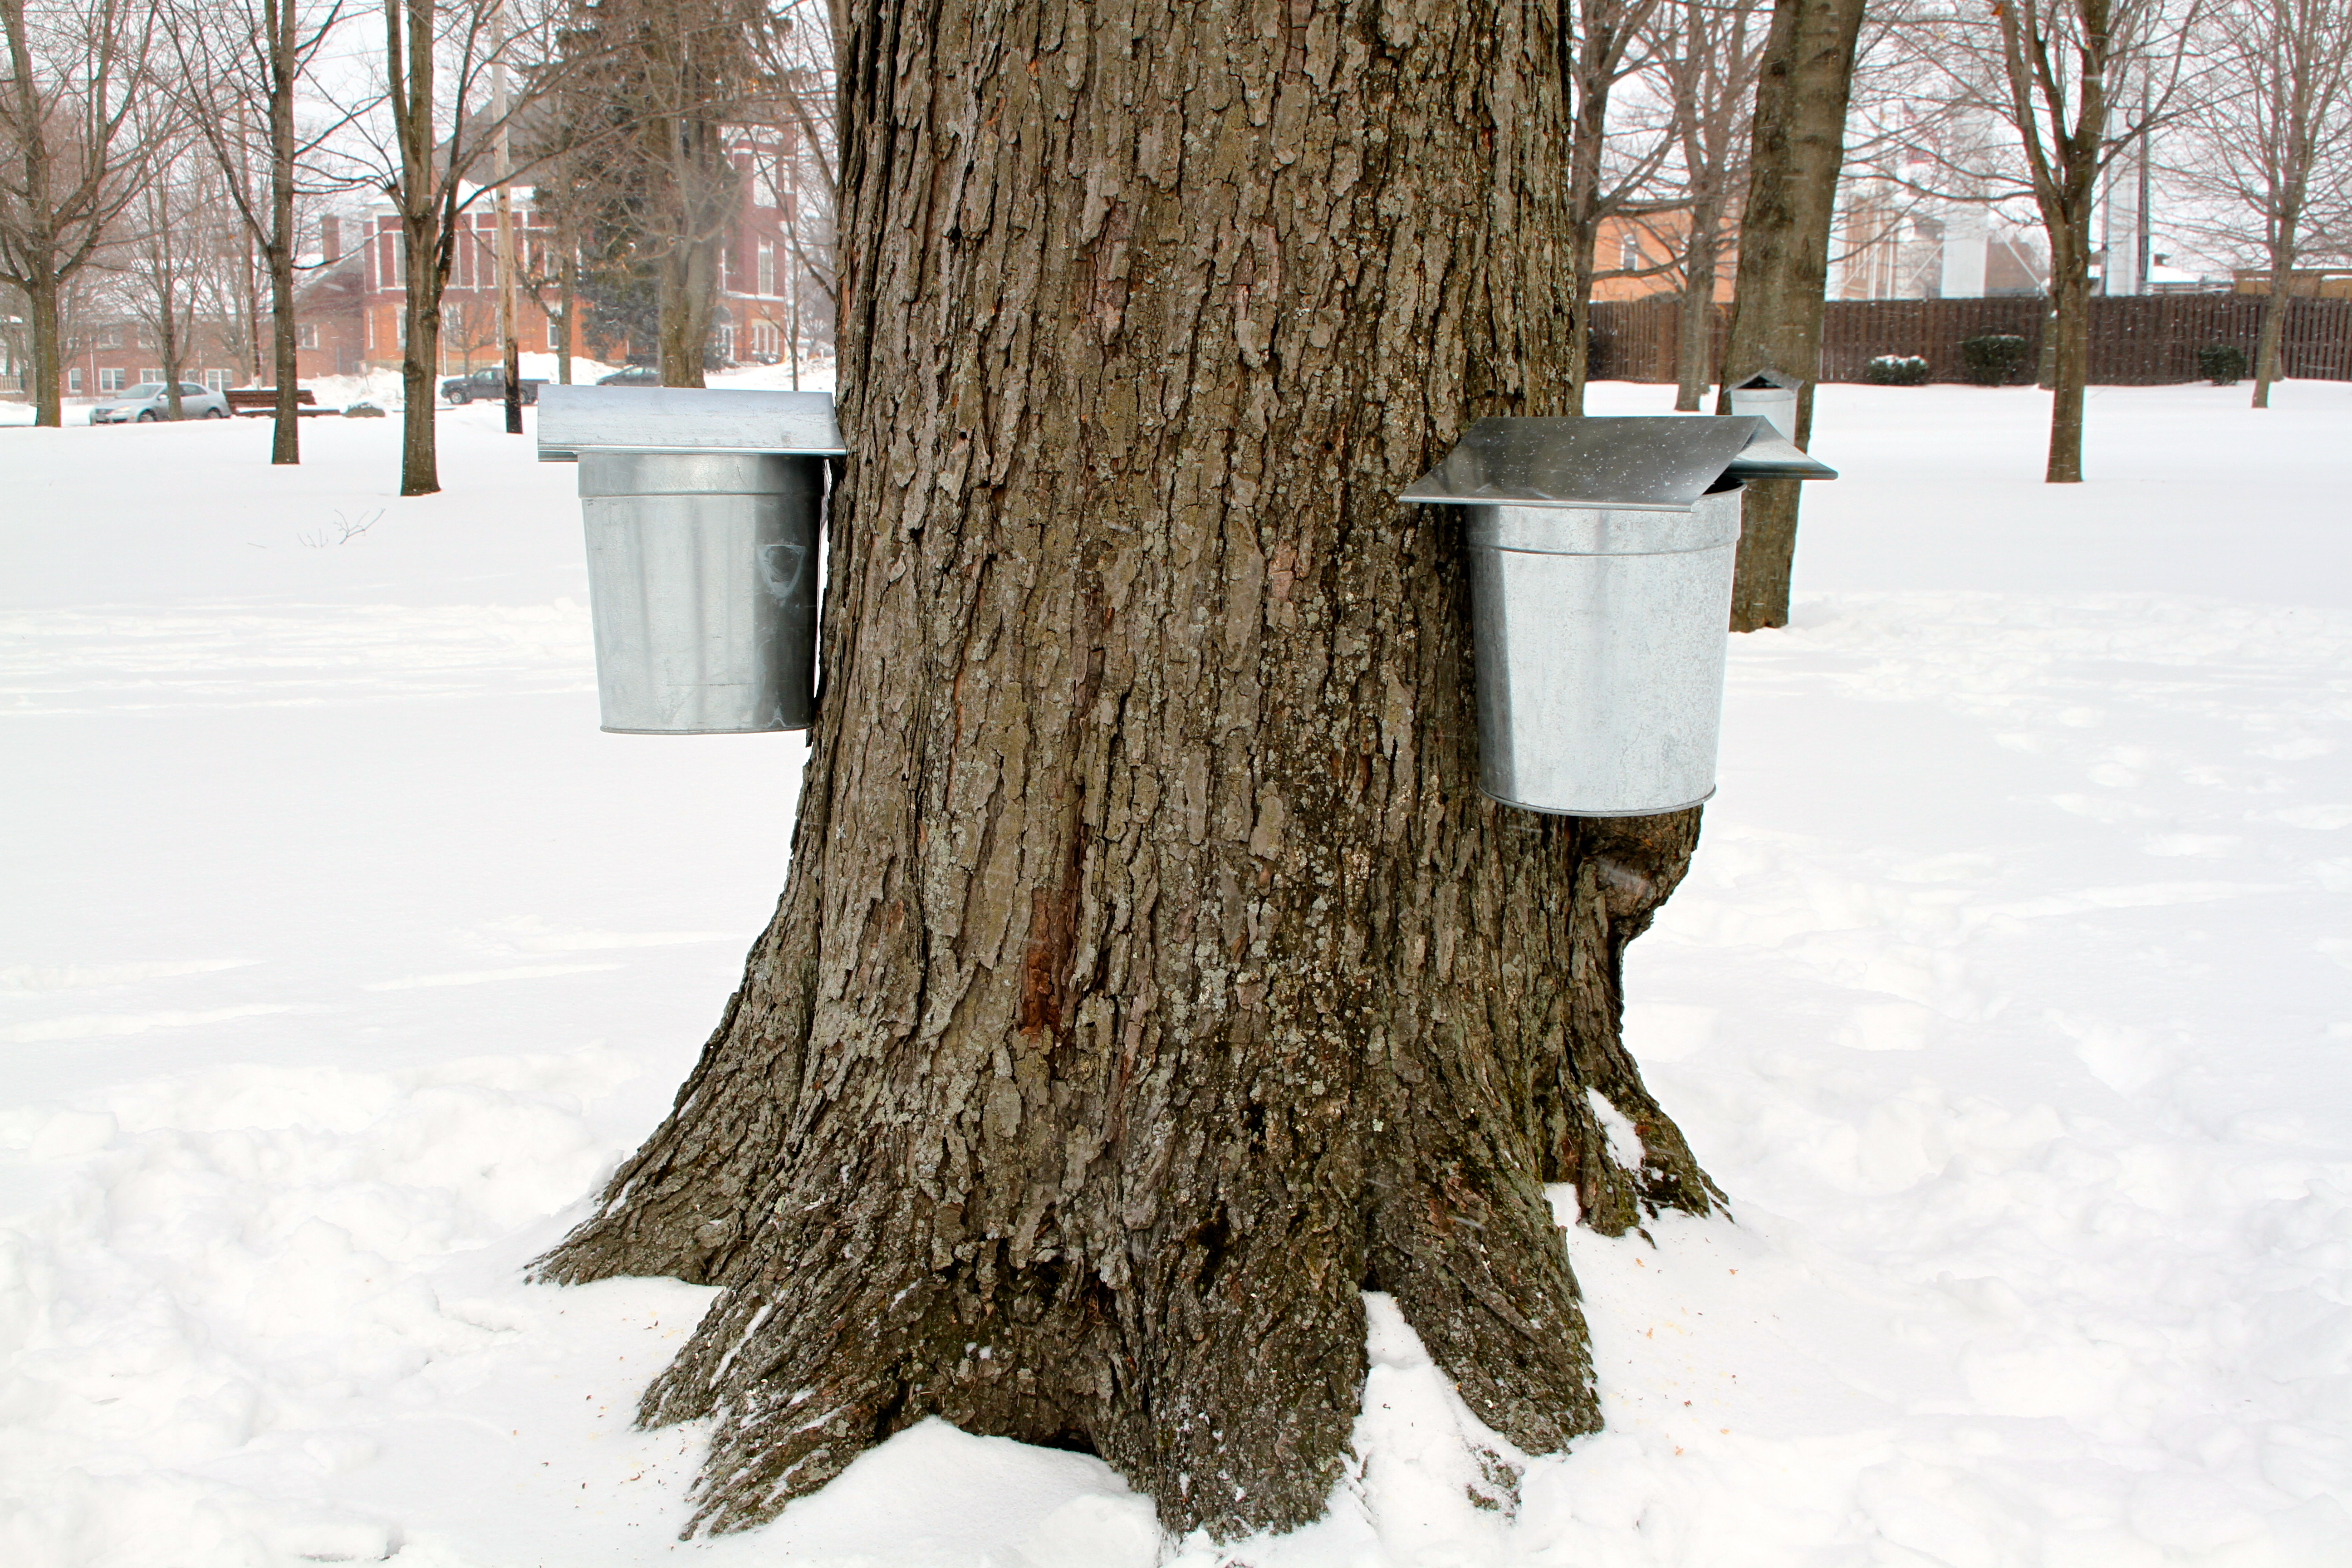 Maple syruping season kicks off in burton geauga county maple leaf